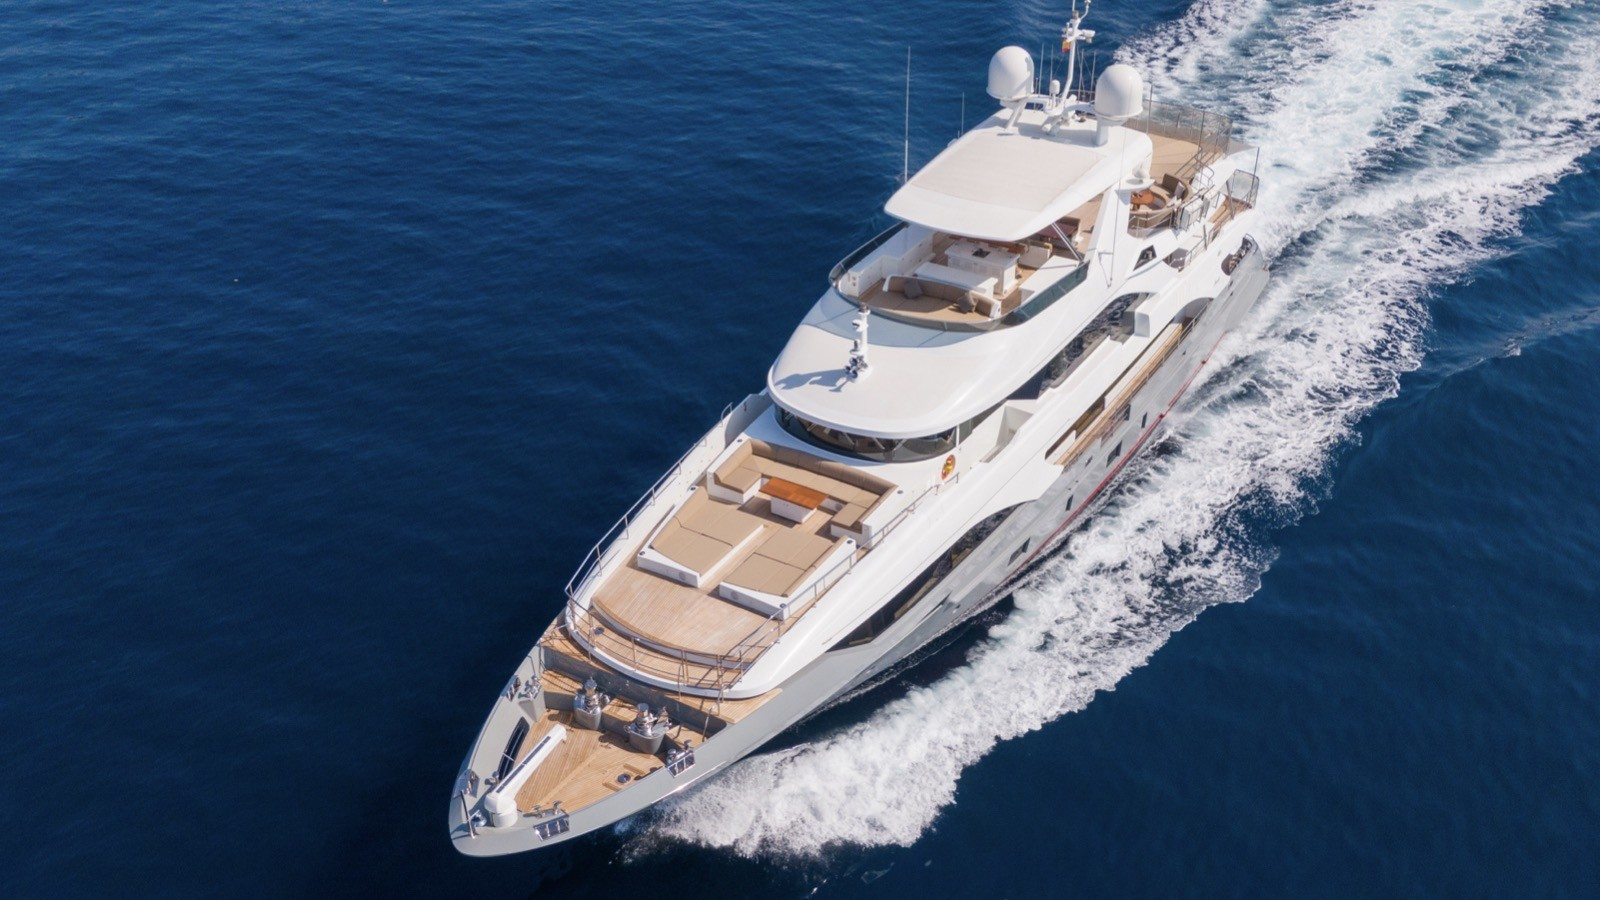 M/Y HEMABEJO 3 superyacht for sale